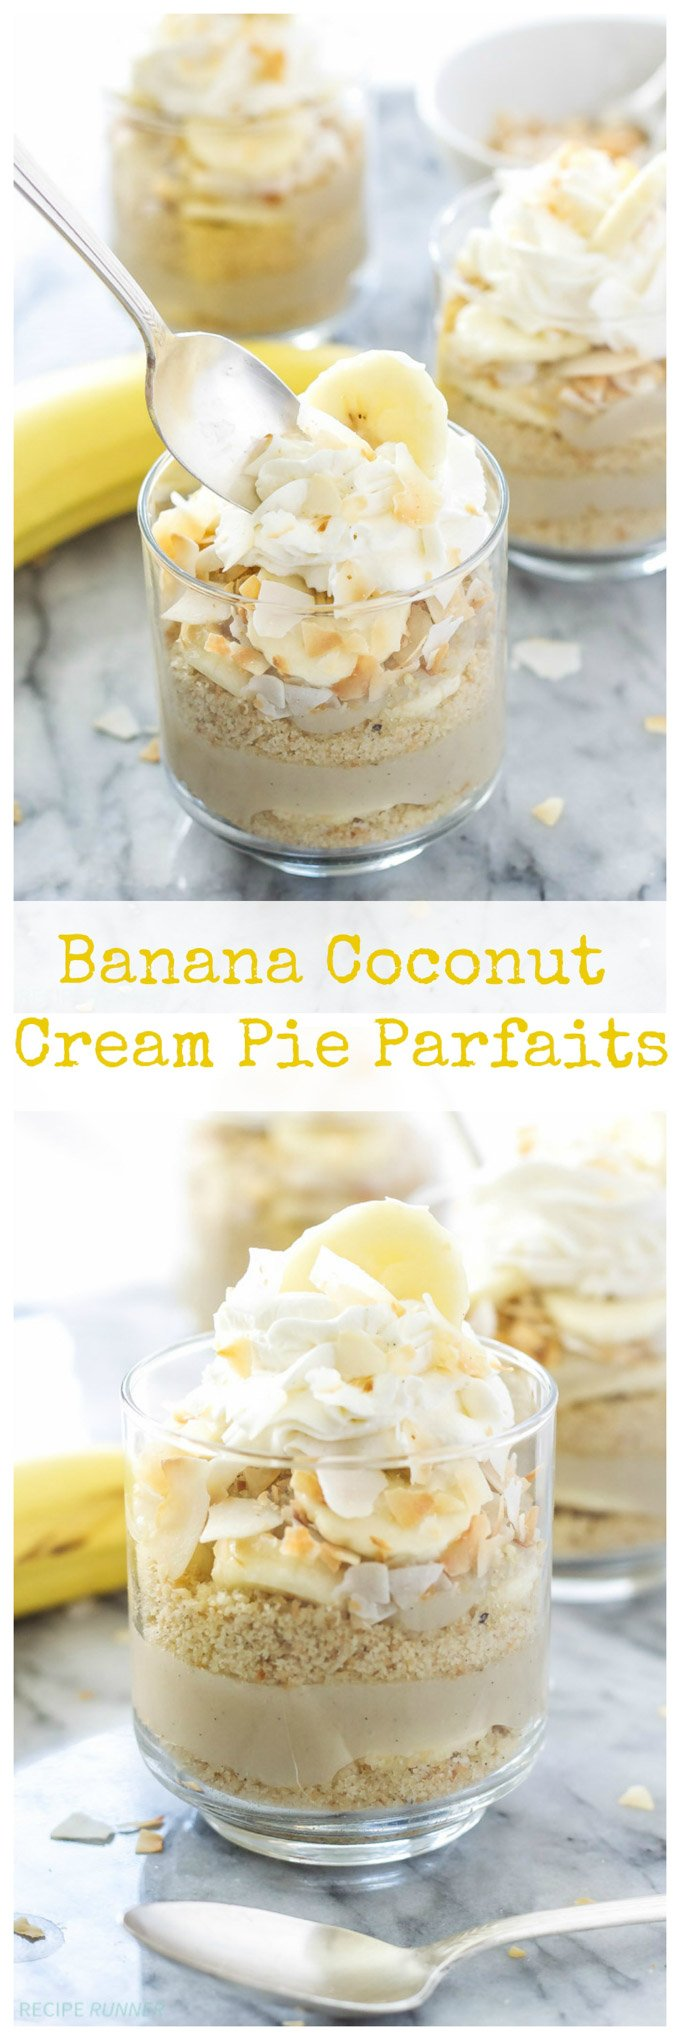 Banana Coconut Cream Pie Parfaits | 2 flavors of pie combined into one delicious and gluten-free parfait!